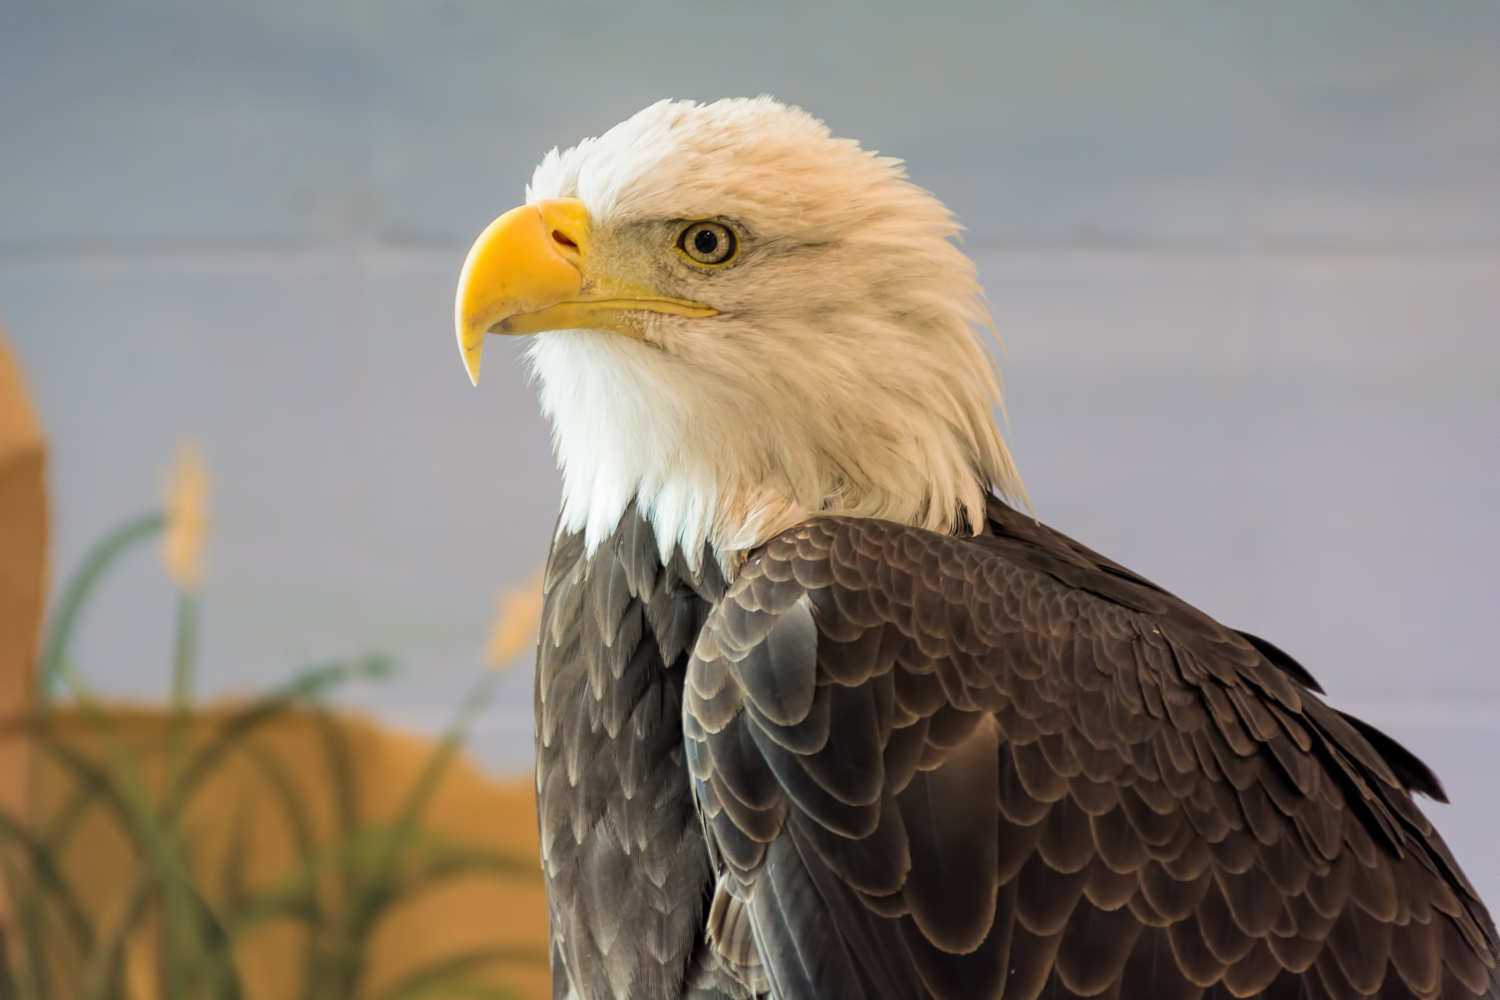 Eagle on display at the National Eagle Center in Wabasha, MN